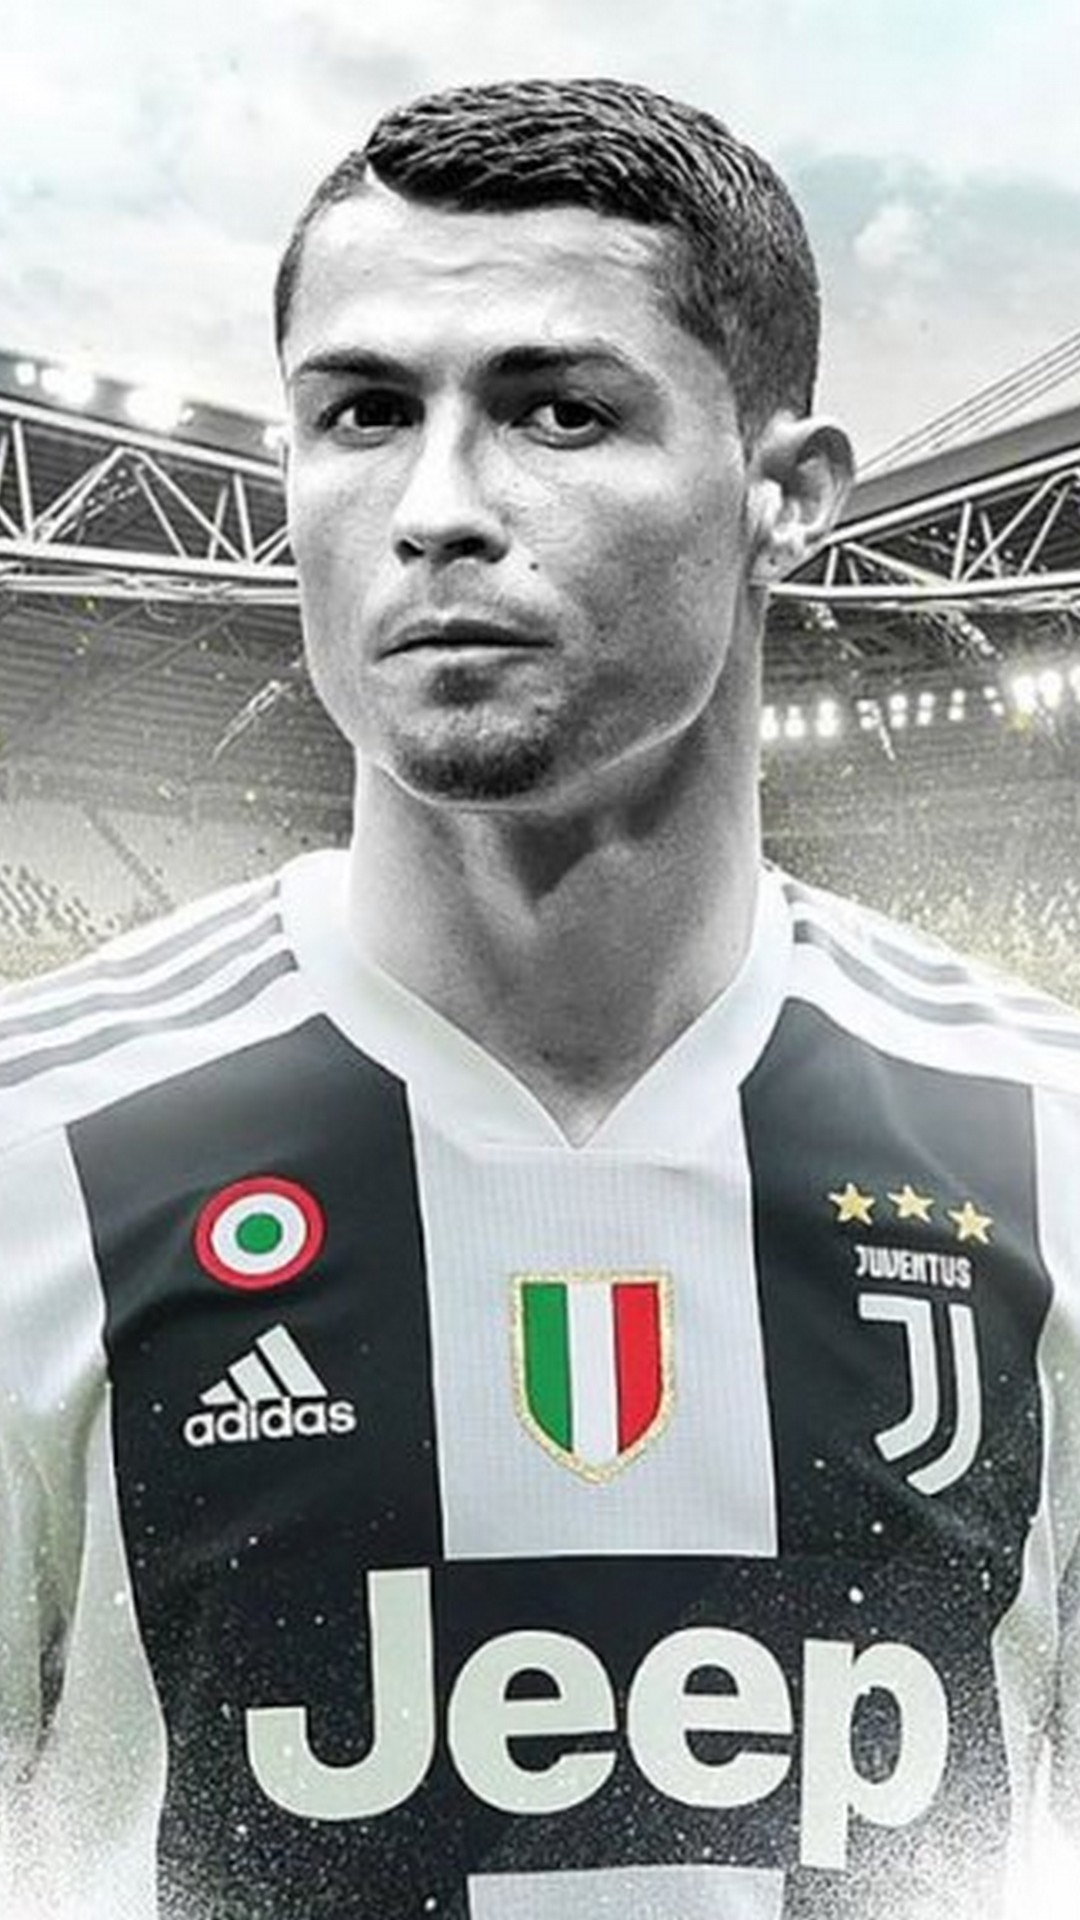 Android Wallpaper CR7 Juventus   2020 Android Wallpapers 1080x1920